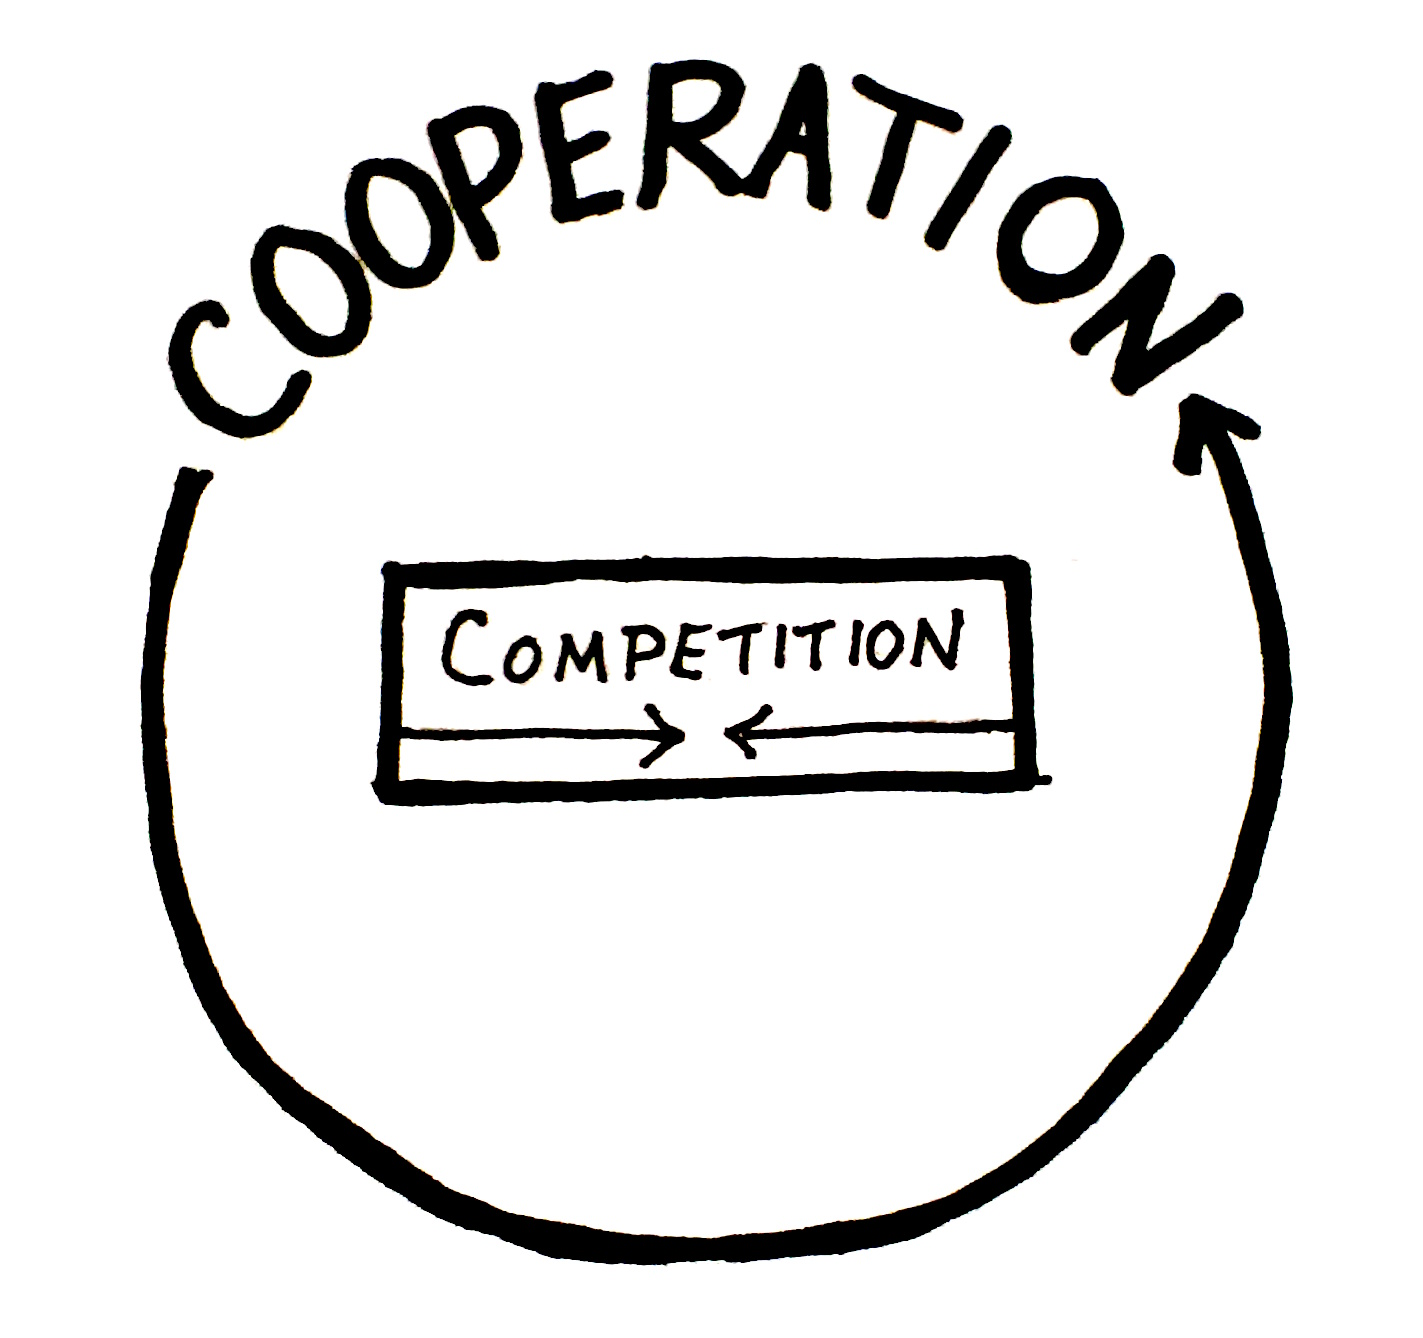 ãcooperation or competitionãã®ç»åæ¤ç´¢çµæ